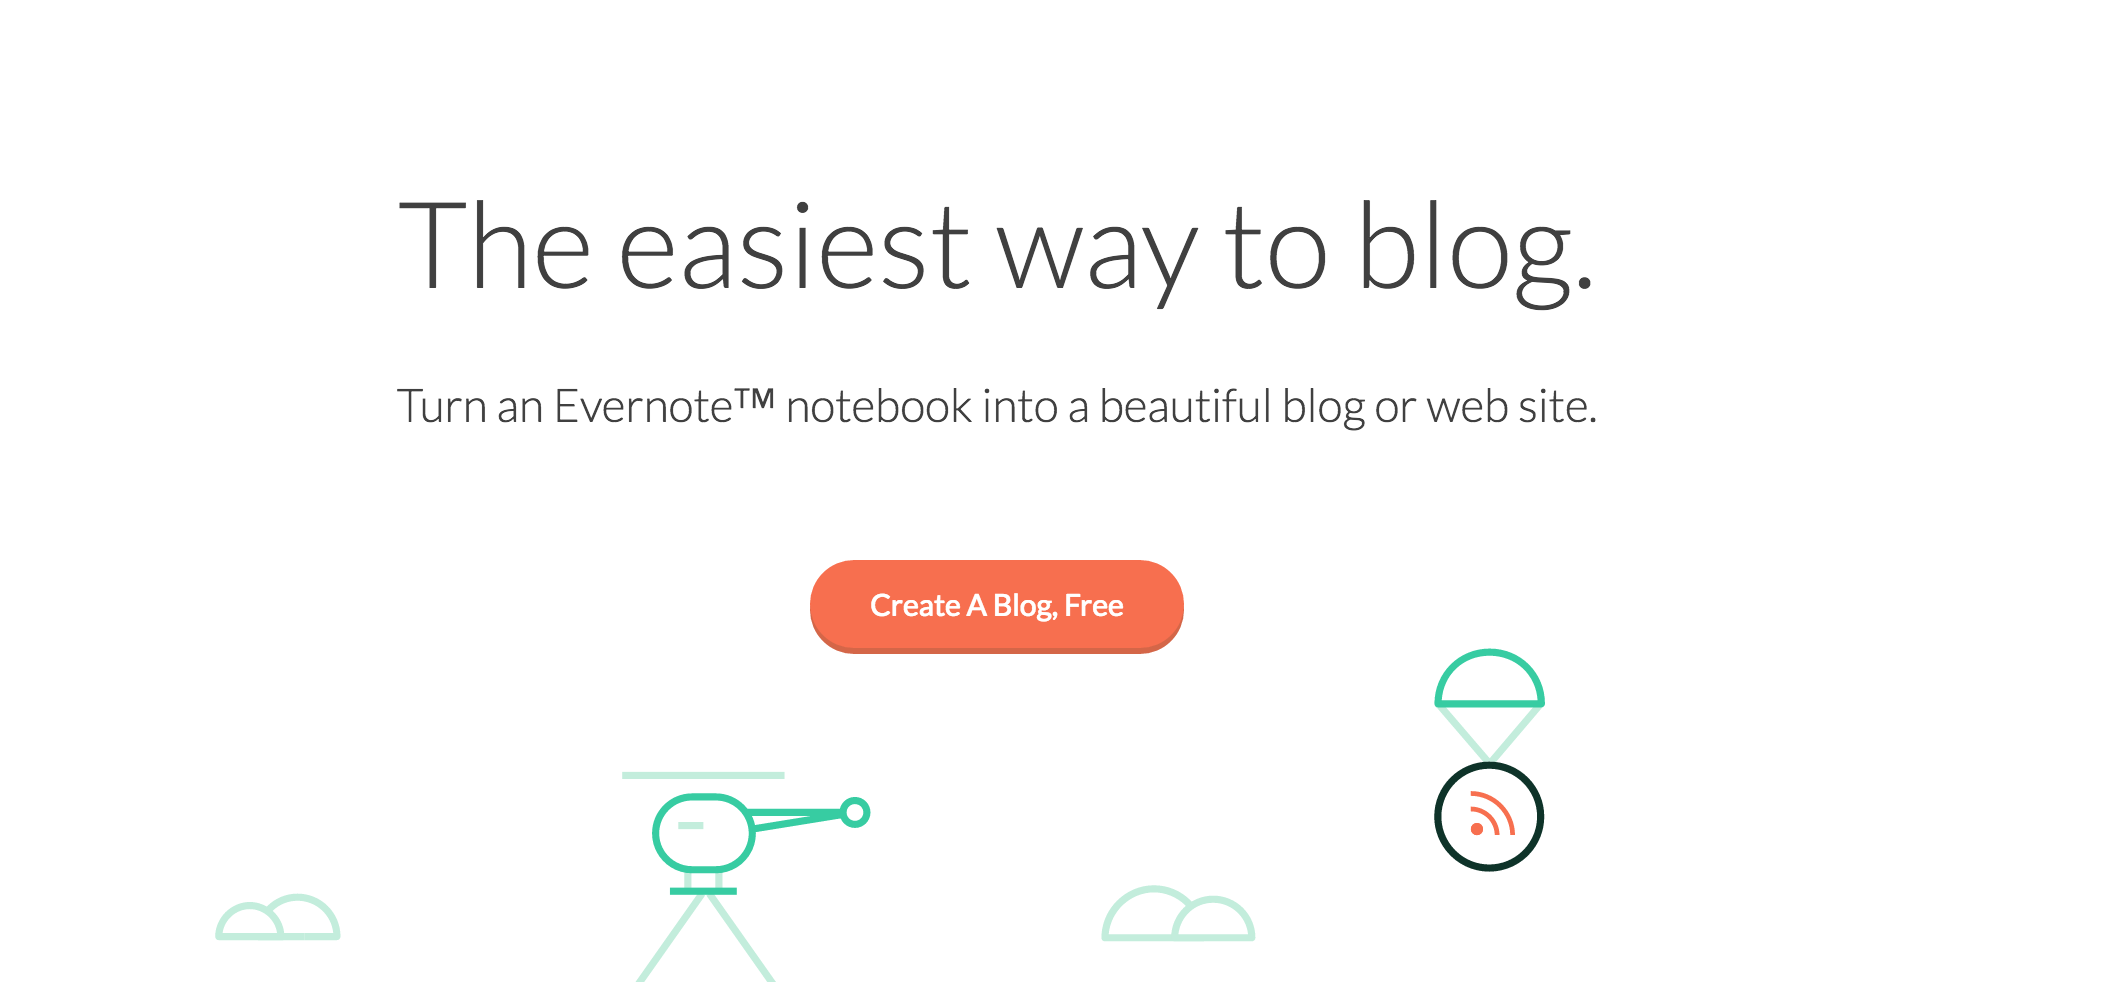 Postach.io / The Evernote Powered Blogging Platform